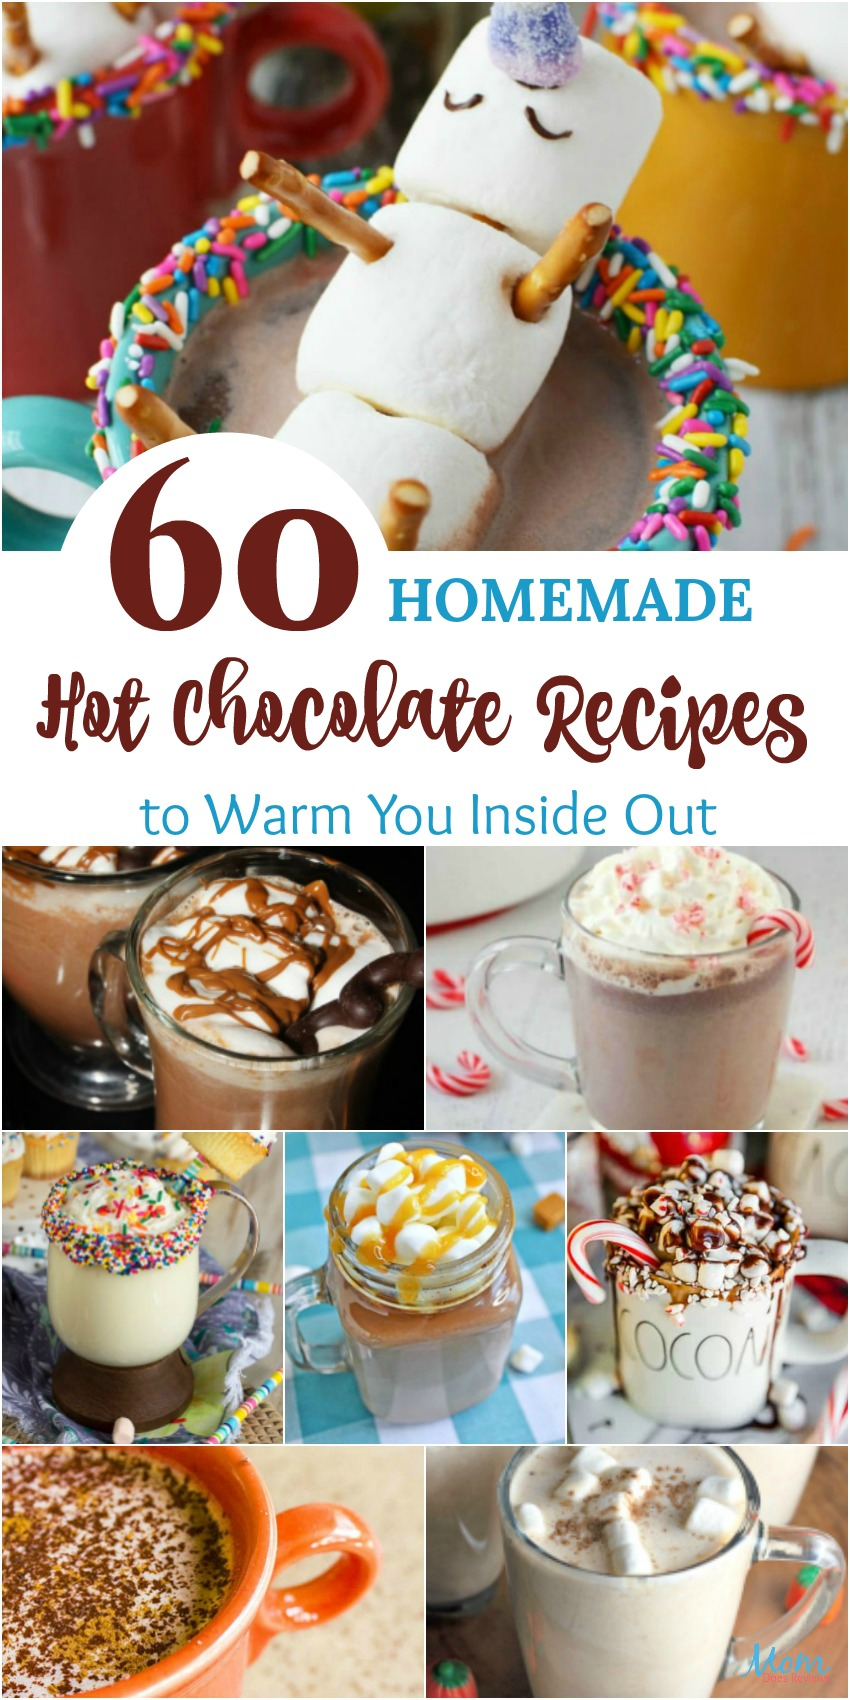 60 Homemade Hot Chocolate Recipes to Warm You Inside Out #hotchocolate #recipes #beverages